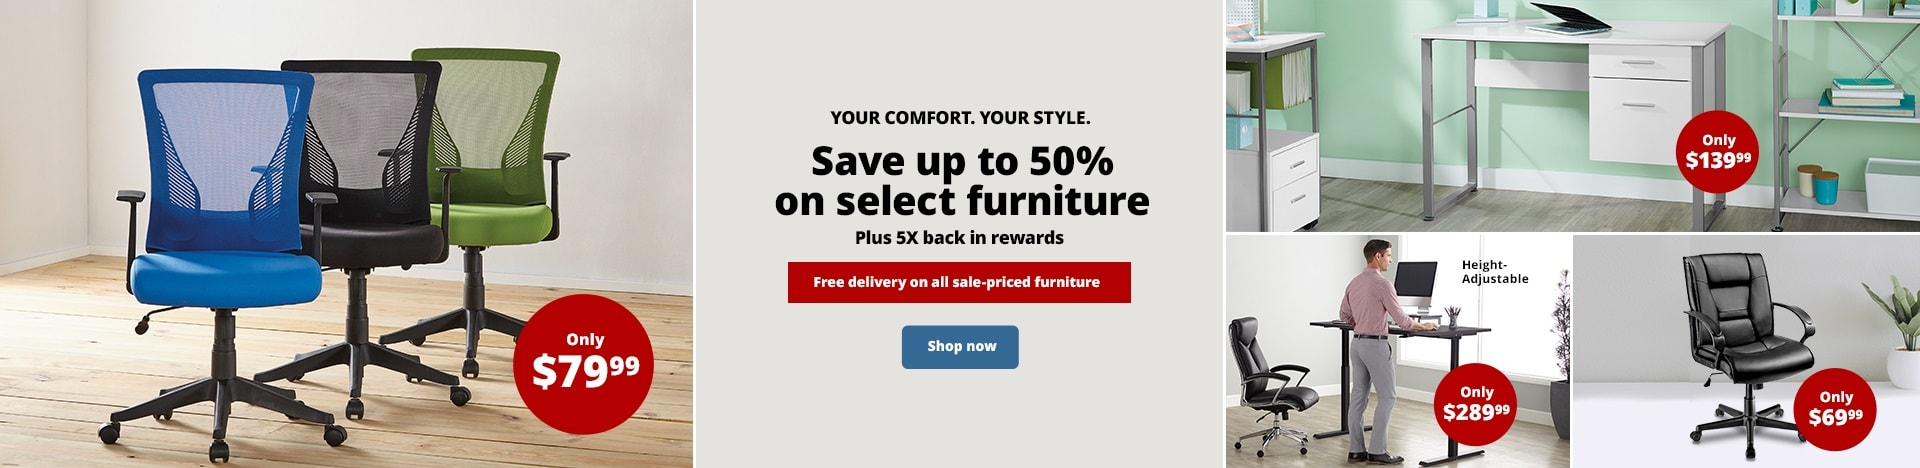 Your Comfort. Your Style. Save up to 50% on select furniture. Plus 5X back in rewards